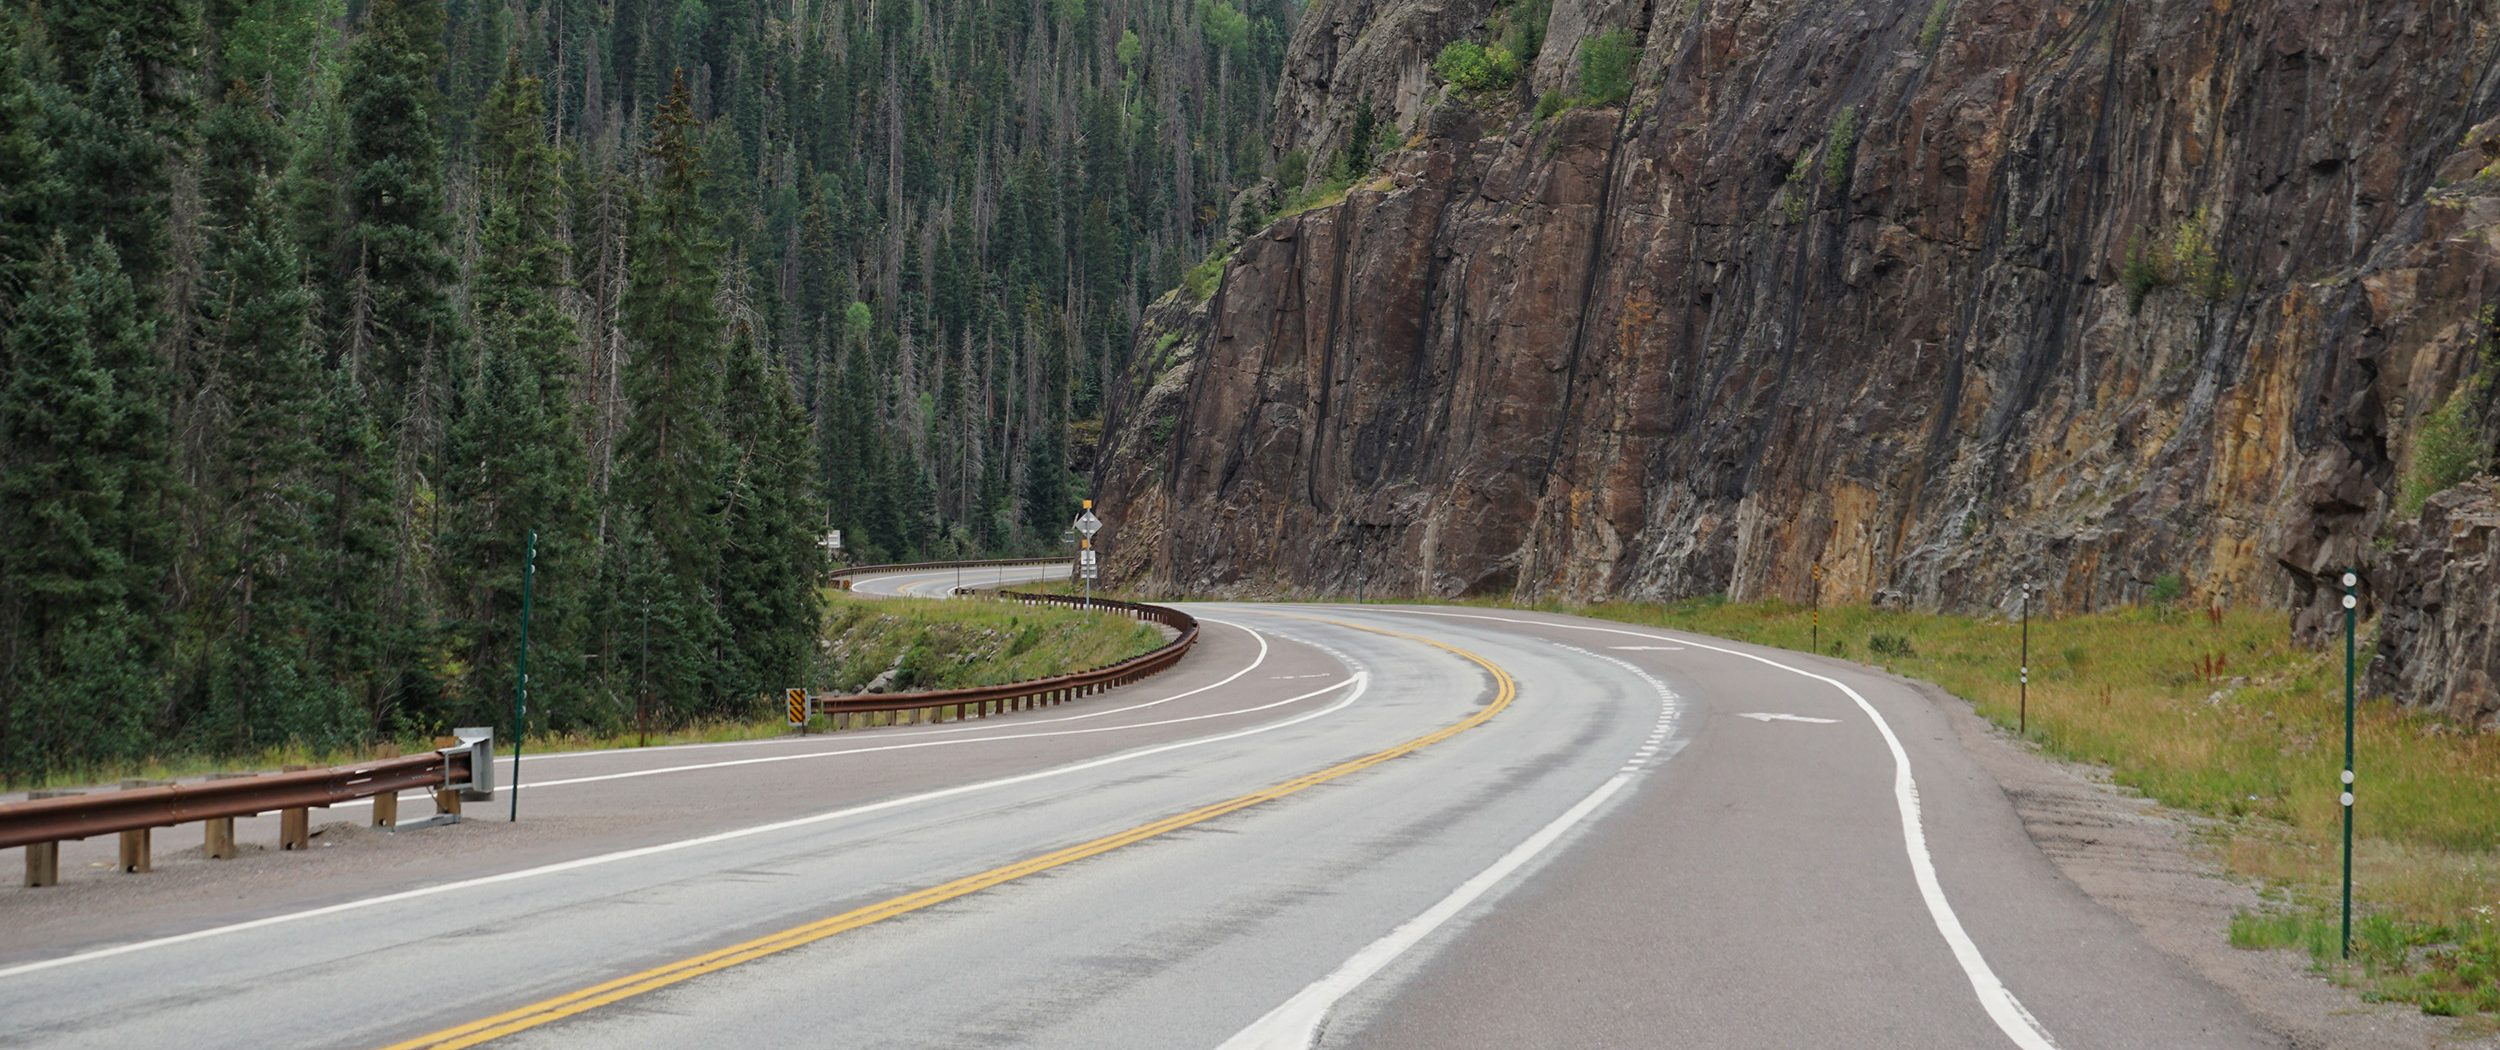 Winding highway with rocky cliff on one side, evergreen trees on the other